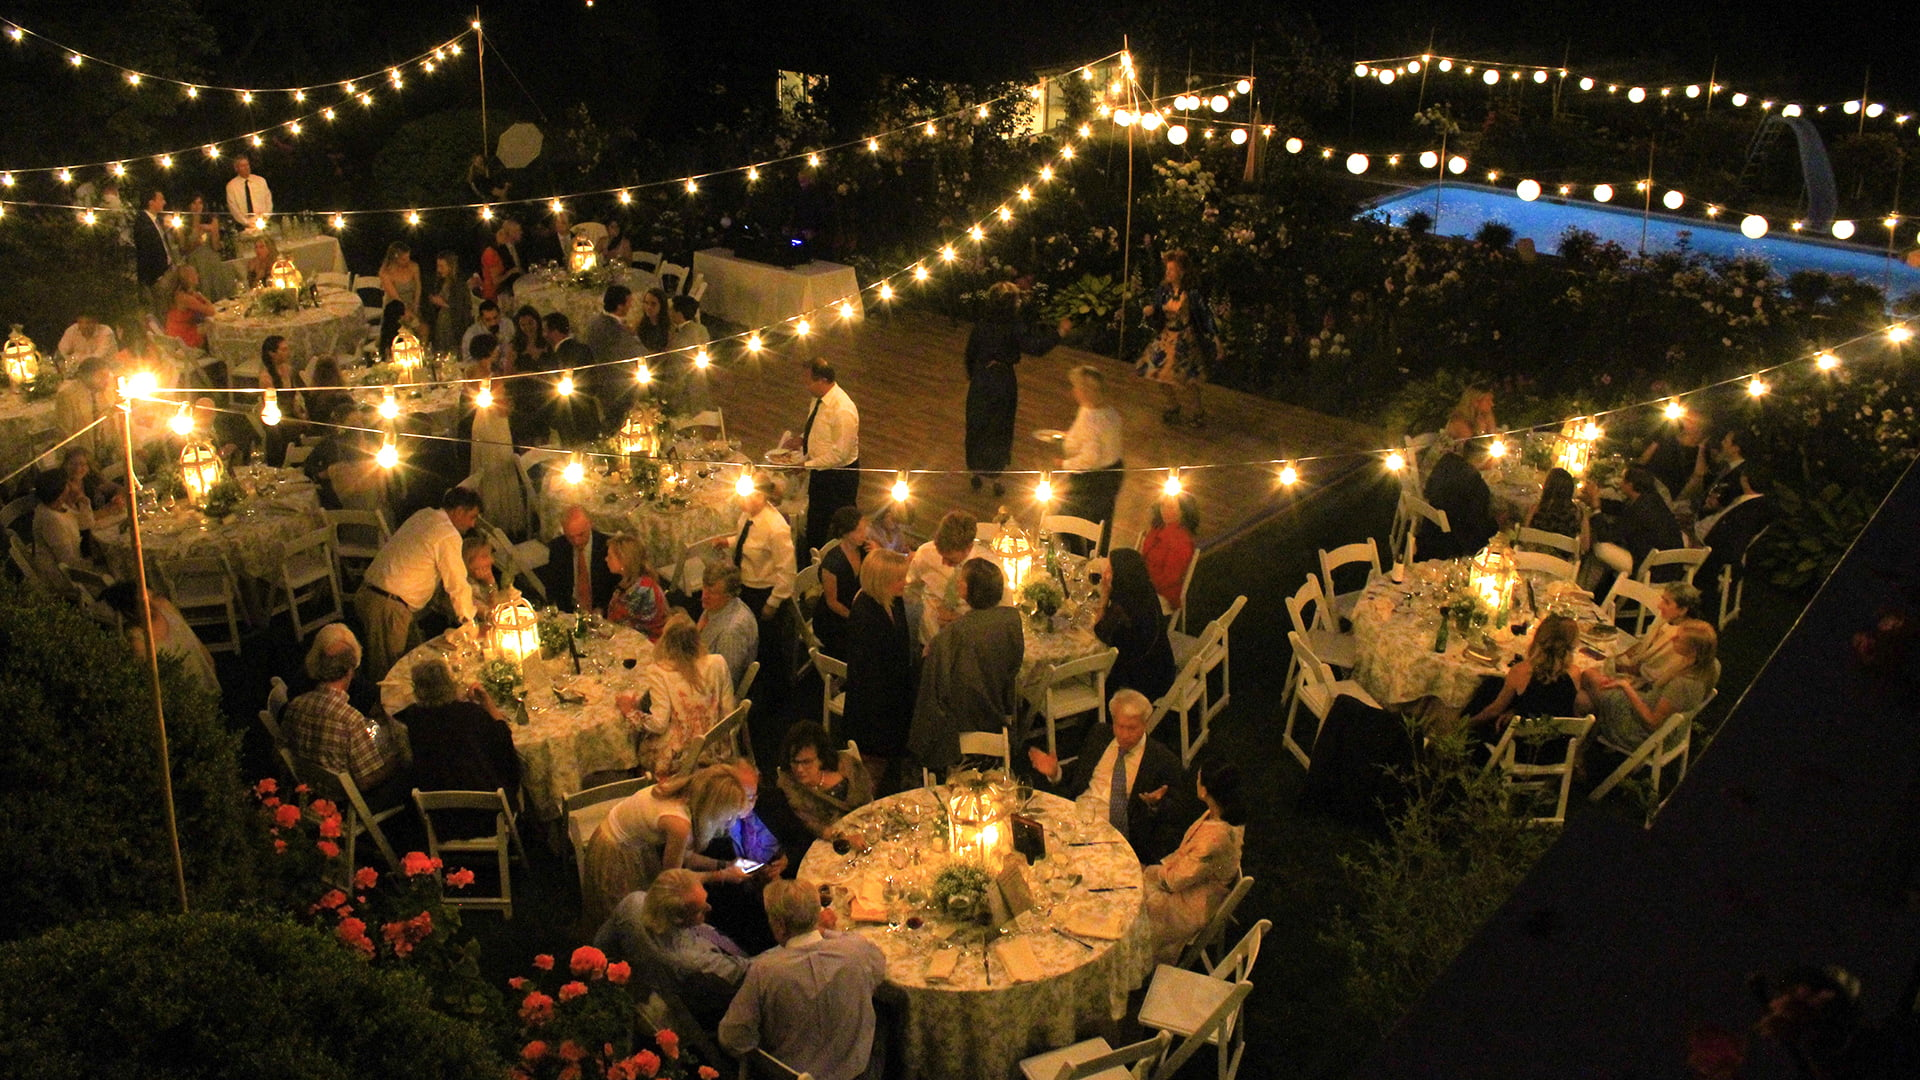 venues-night-party